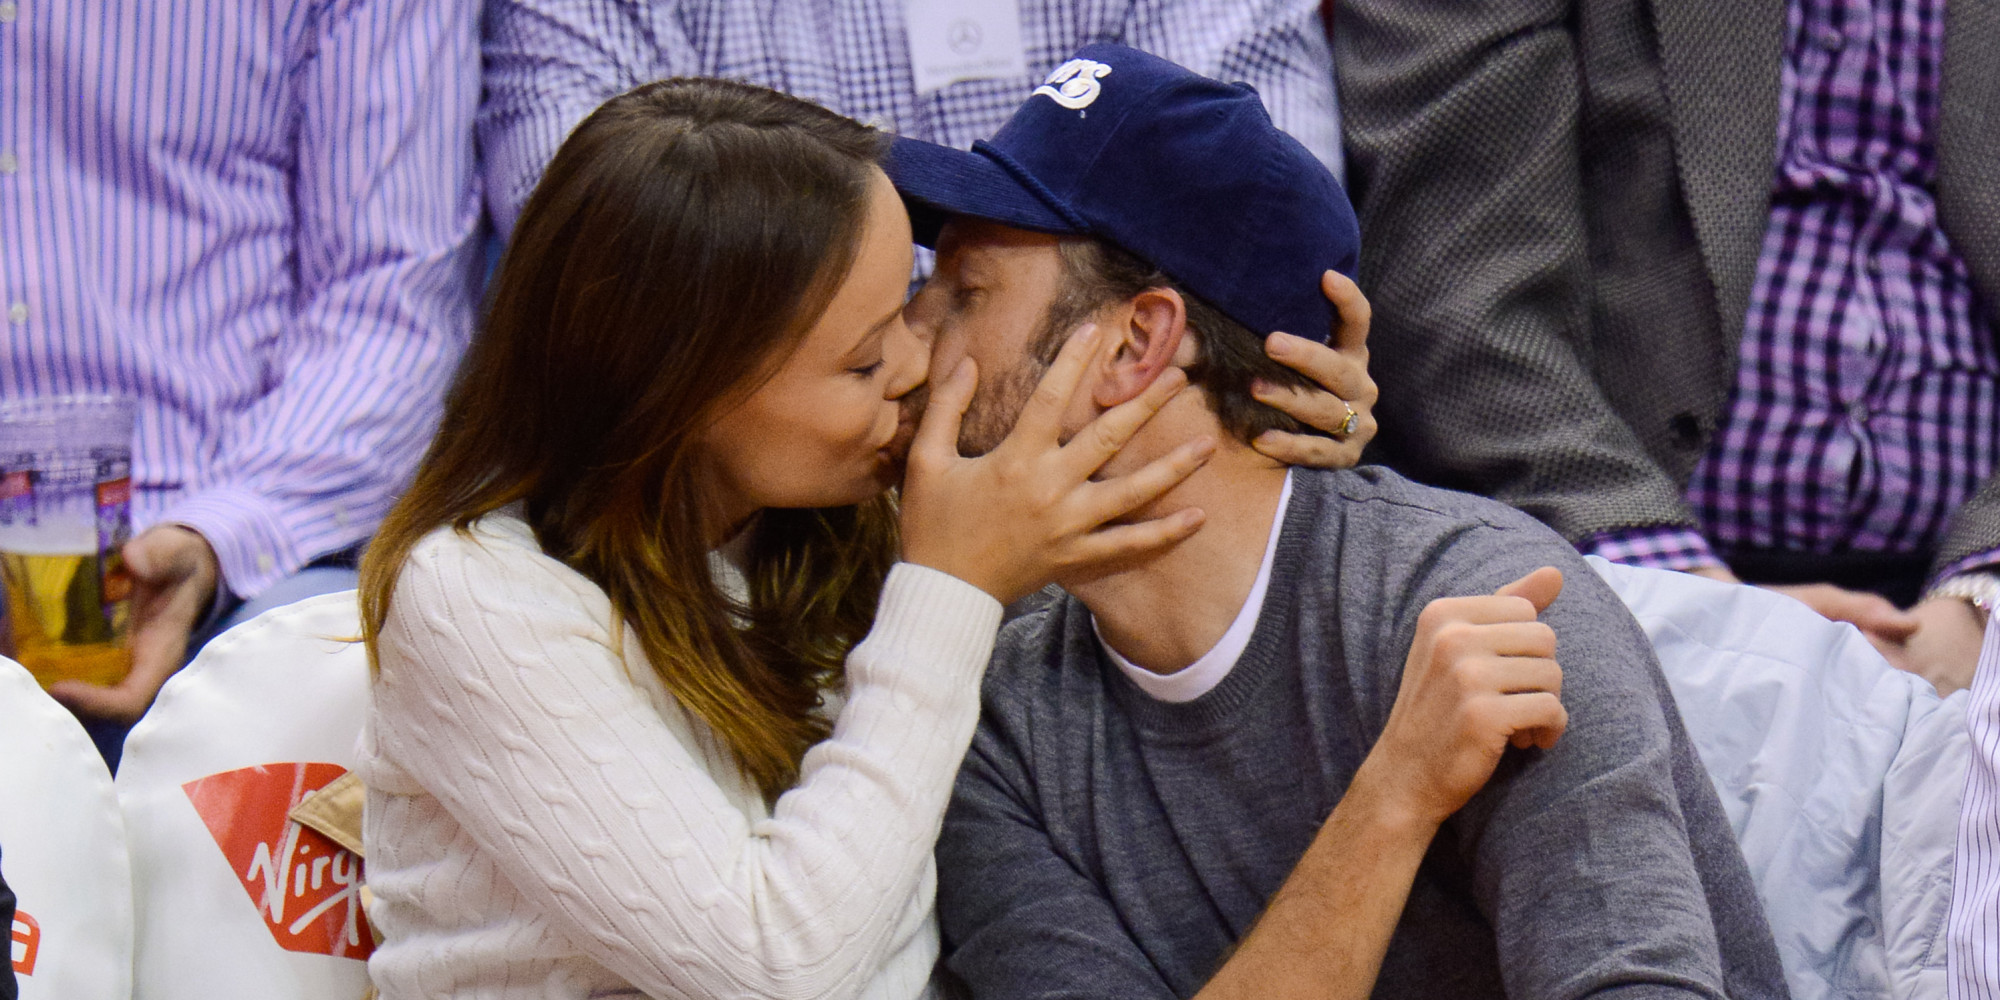 pregnant olivia wilde and jason sudeikis show pda at basketball game